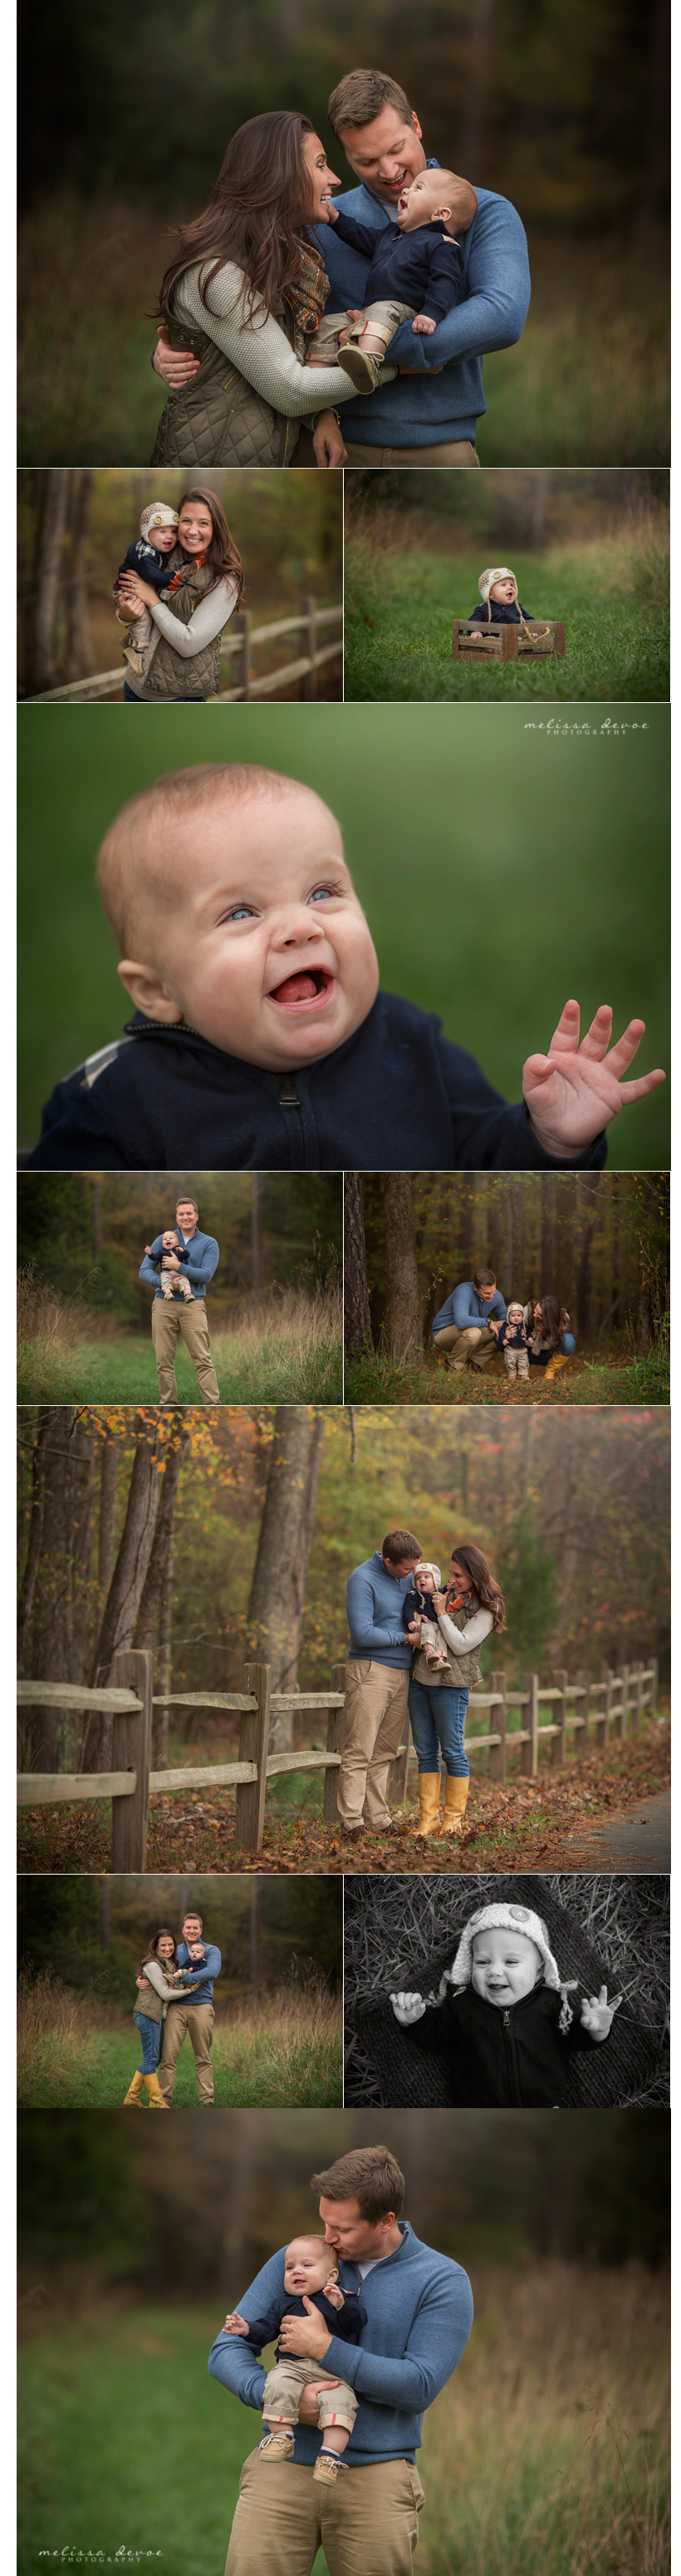 Melissa DeVoe Photography Raleigh NC Child and Family Photographer